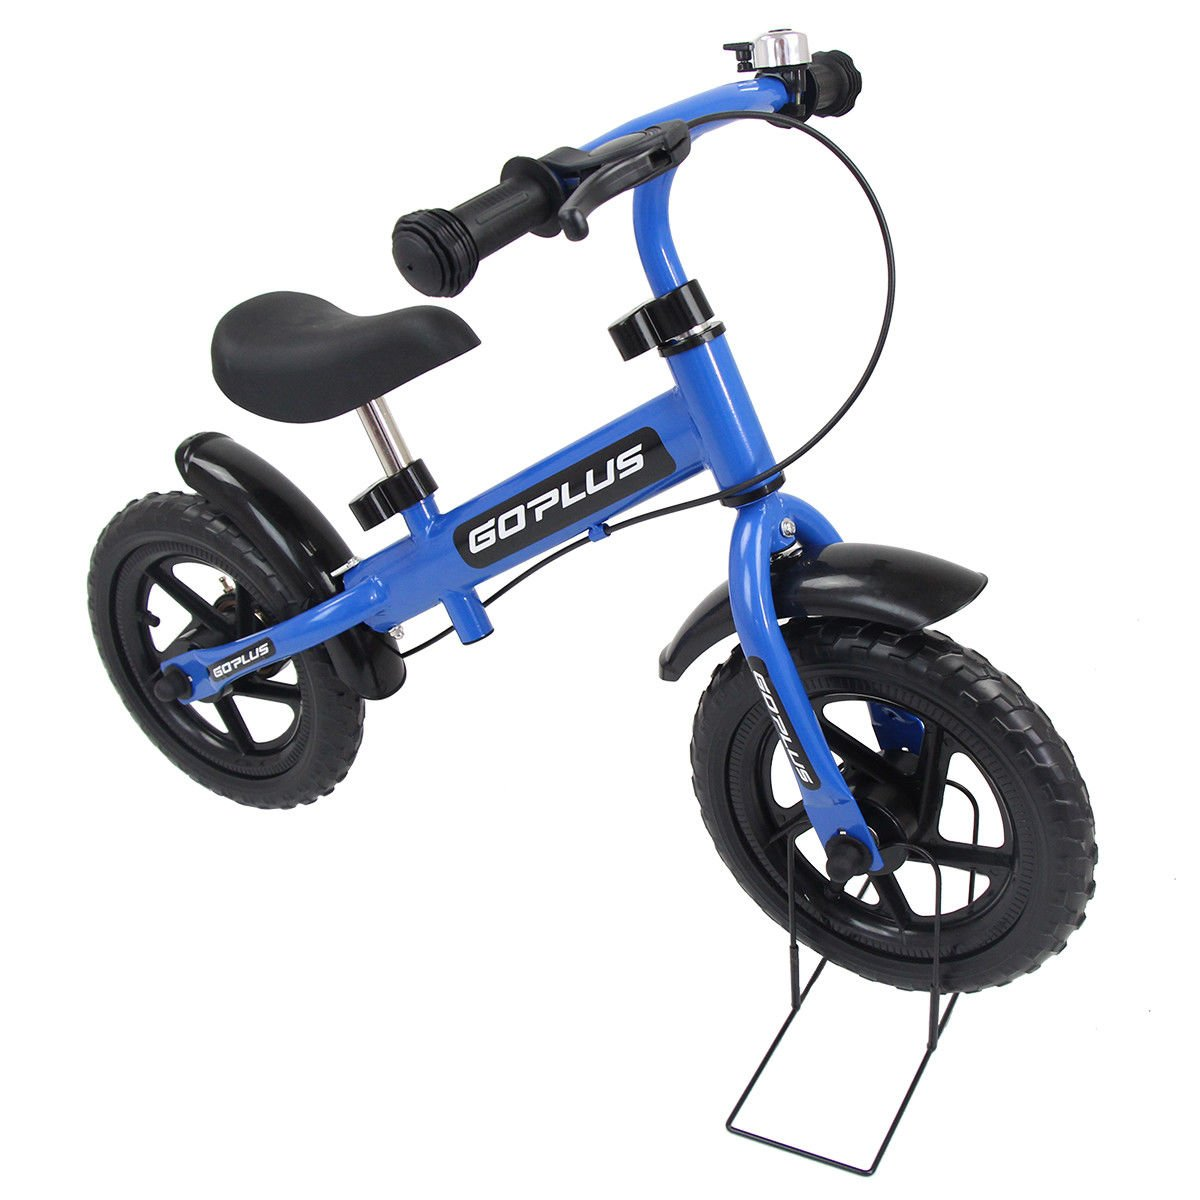 Goplus 12'' Kids Balance Bike No-Pedal Learn To Ride Pre Bike Push Walking Bicycle Adjustable Height with Bell Ring and Stand (Blue (with Splasher))